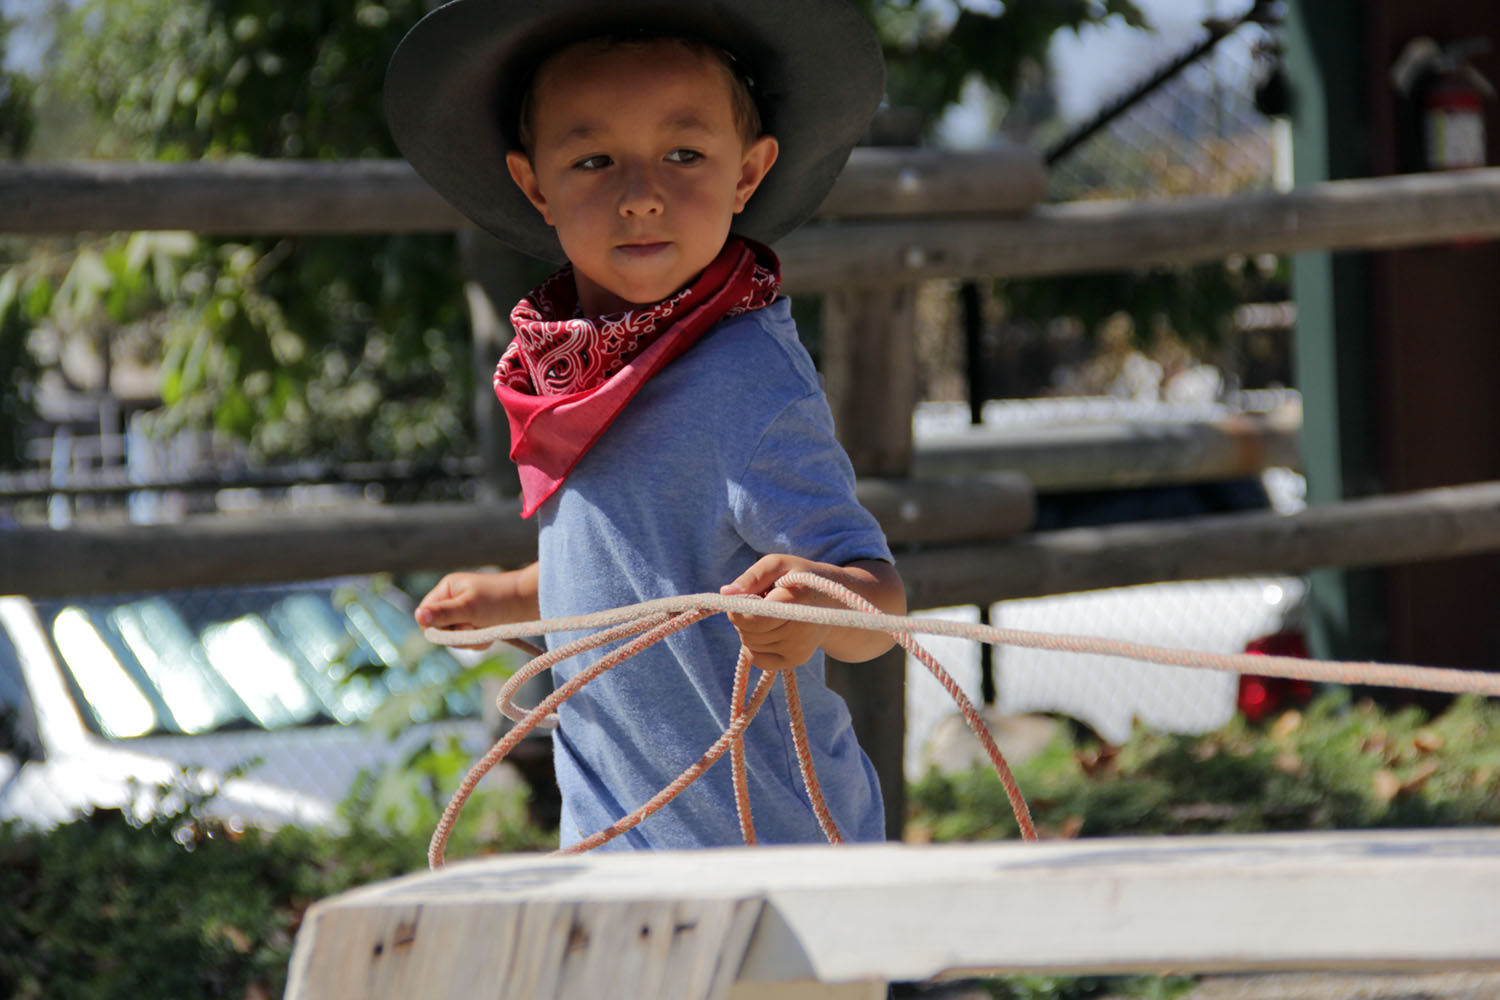 James Smith tightens his rope after getting his lasso around the fake steer during the Cowboy Camp the J.F. Shea Therapeutic Riding Center holds annually Wednesday, Aug. 14. Photo: Shawn Raymundo